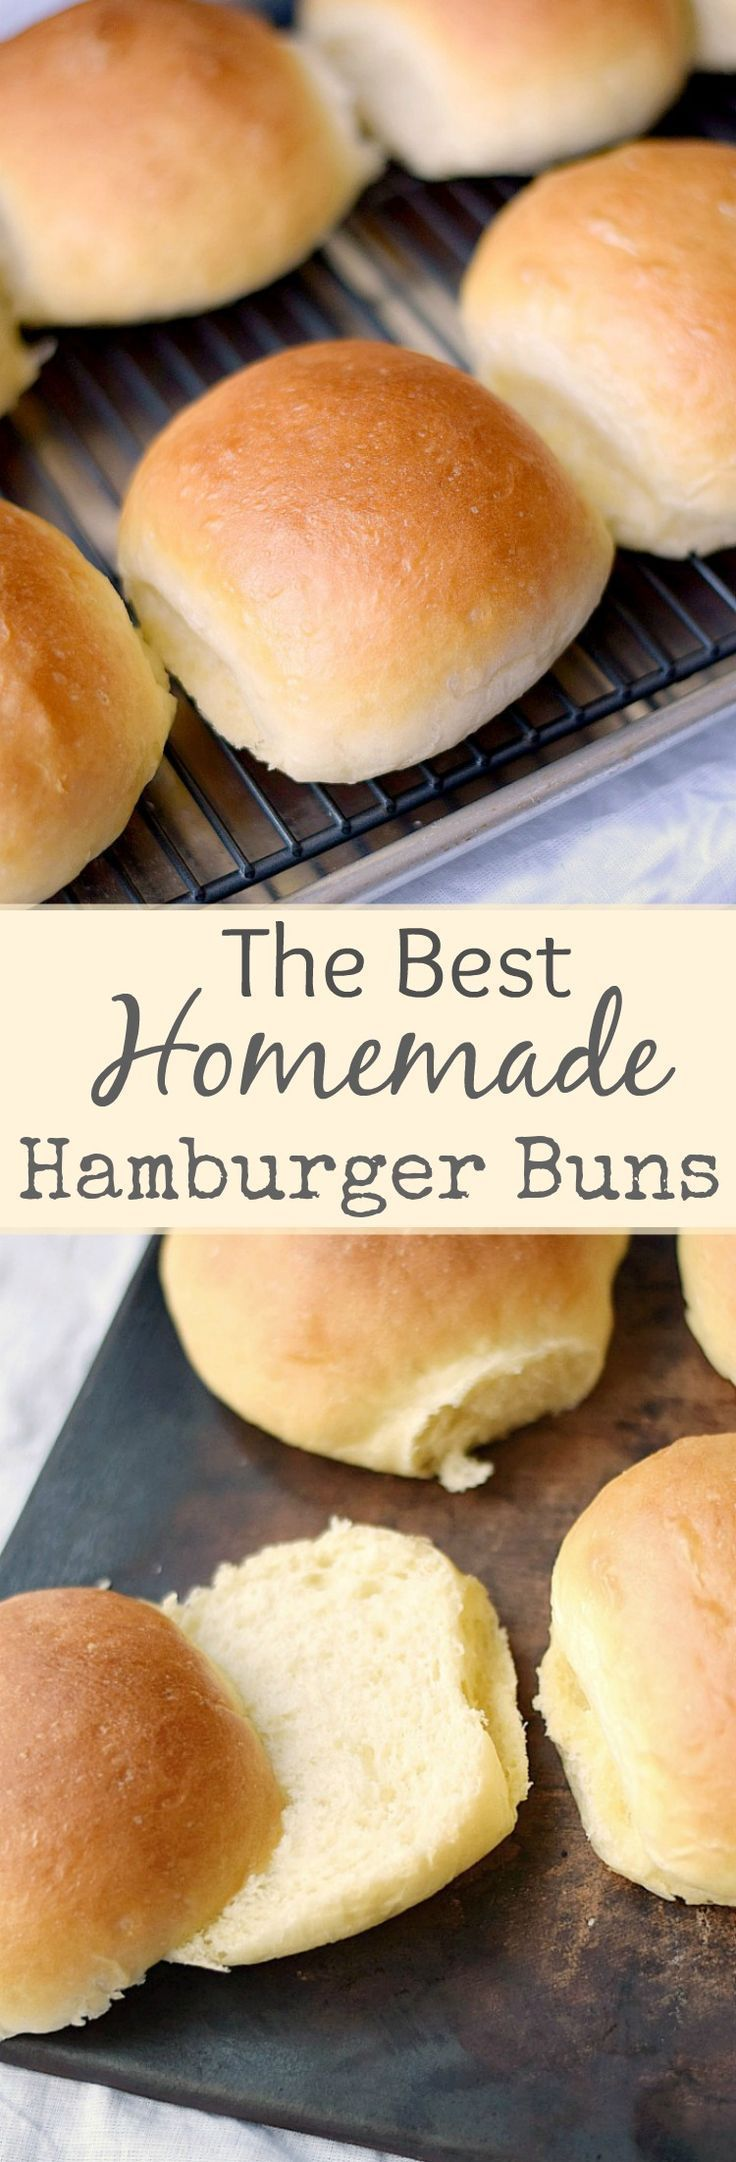 This is the one and only recipe for the BEST Homemade Hamburger Buns that you will ever need!! cookingwithcurls.com